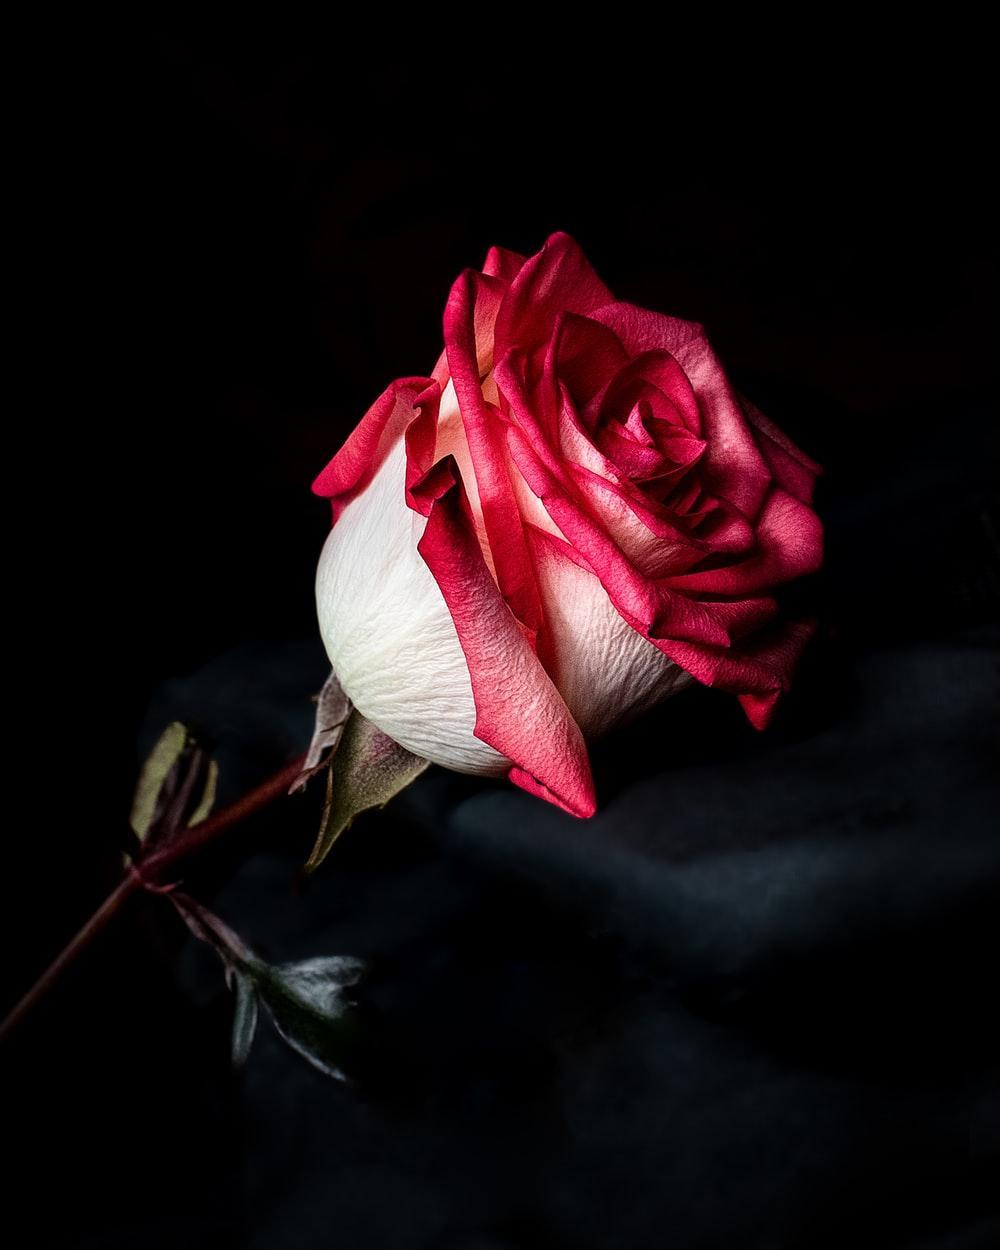 Good Morning Messages And Flower Rose Pictures Gif For Android Apk Download